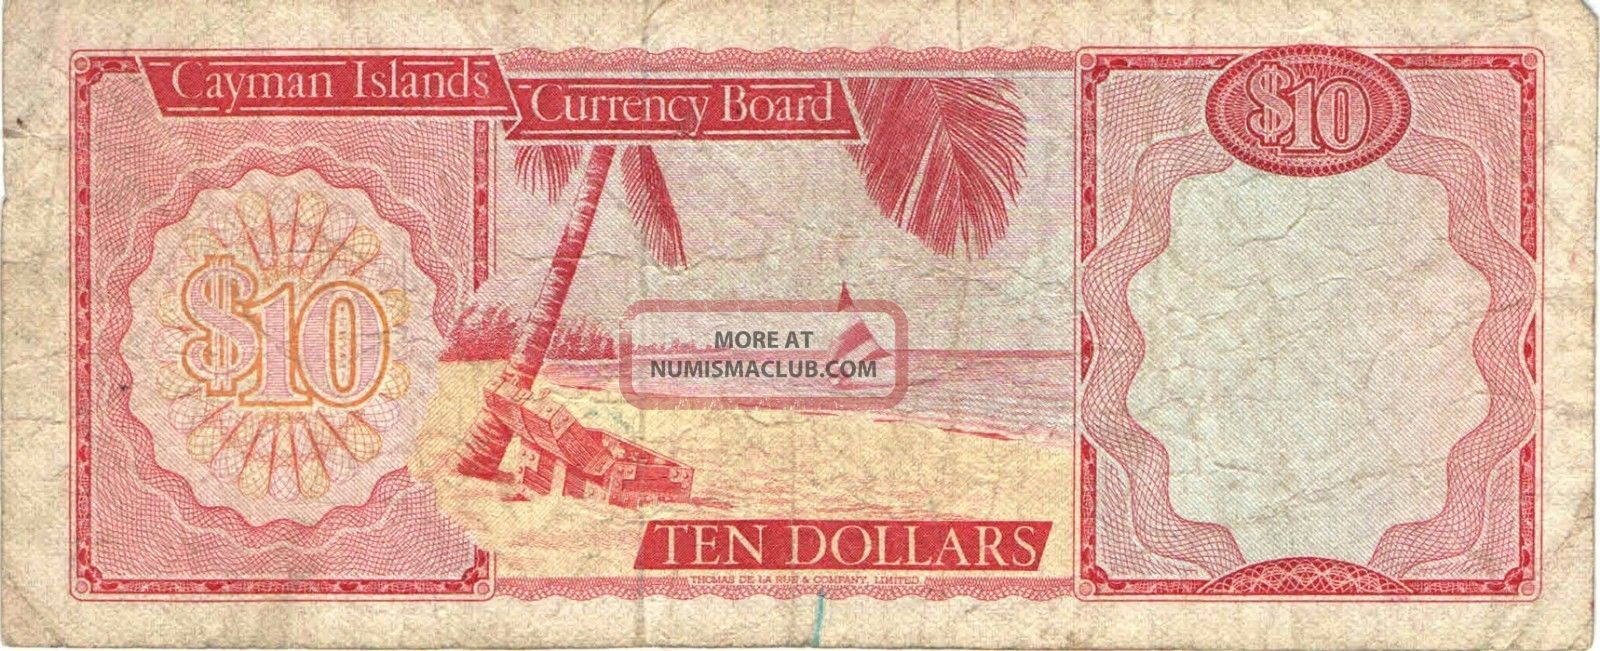 CAYMAN ISLANDS 5 dollars 1971 Currency Board banknote  :: pamregetist tk